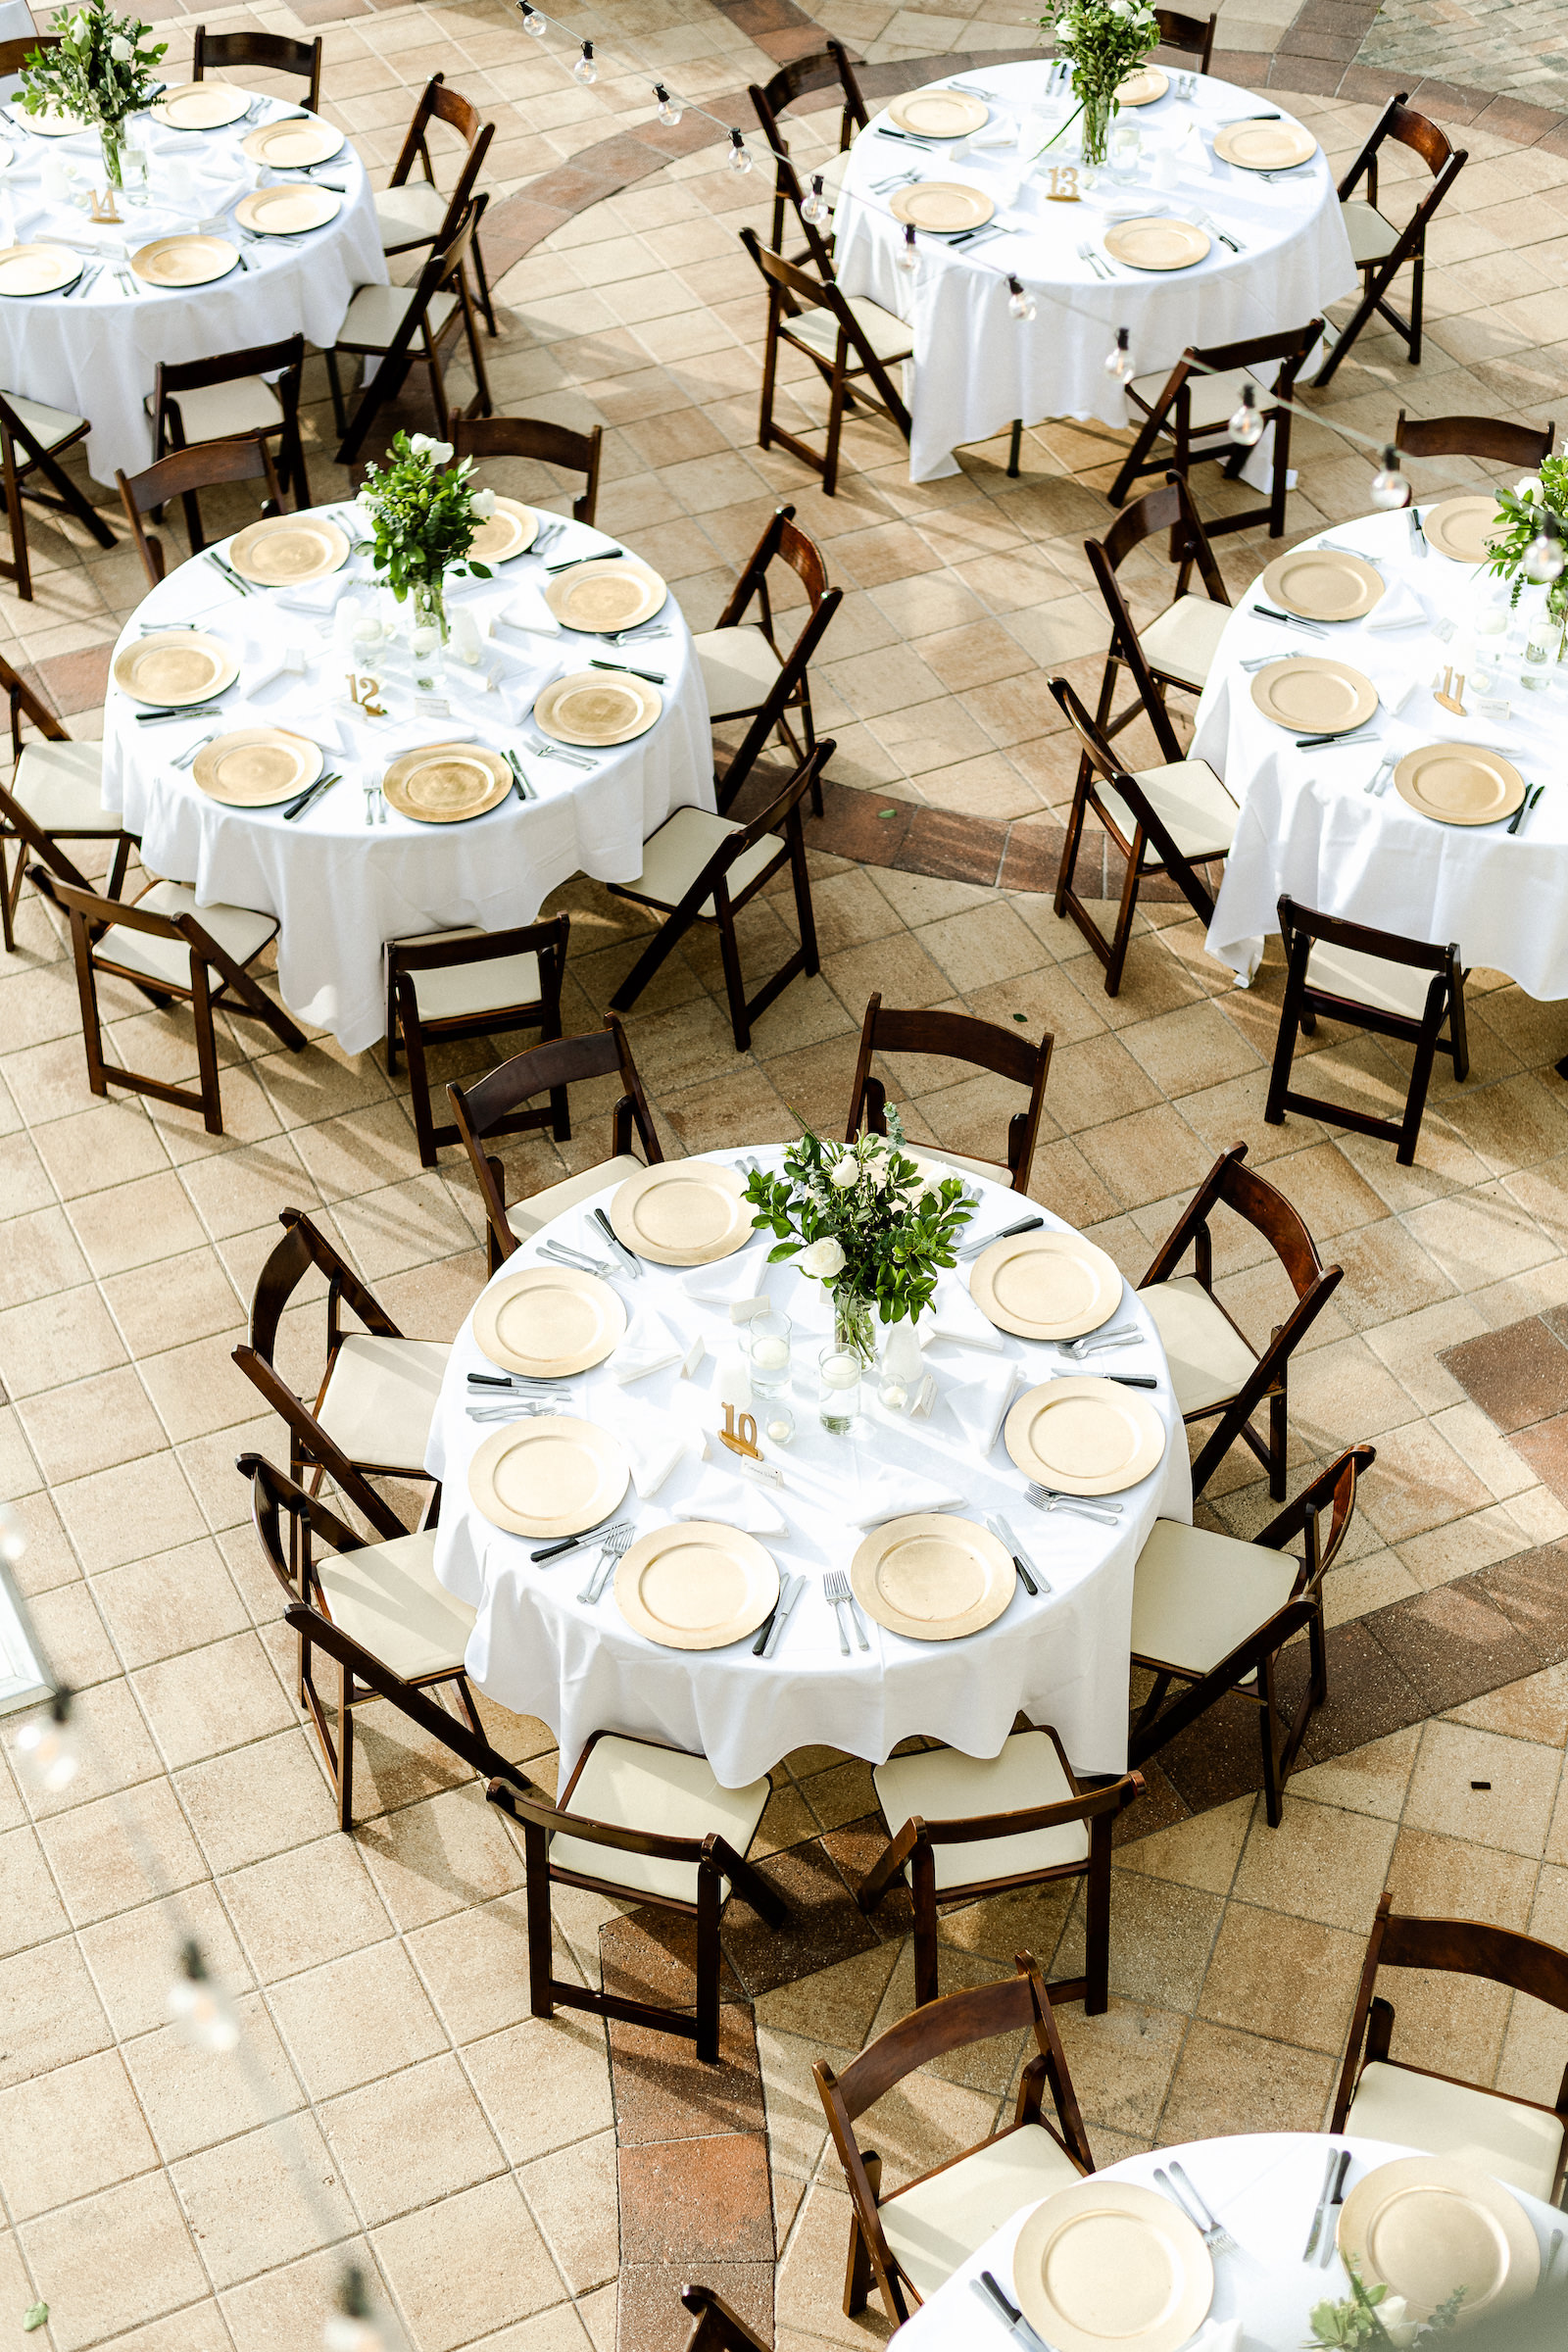 Outdoor wedding Reception with Round tables with white linens and mahogany wood folding chairs with gold charger plates and greenery centerpieces